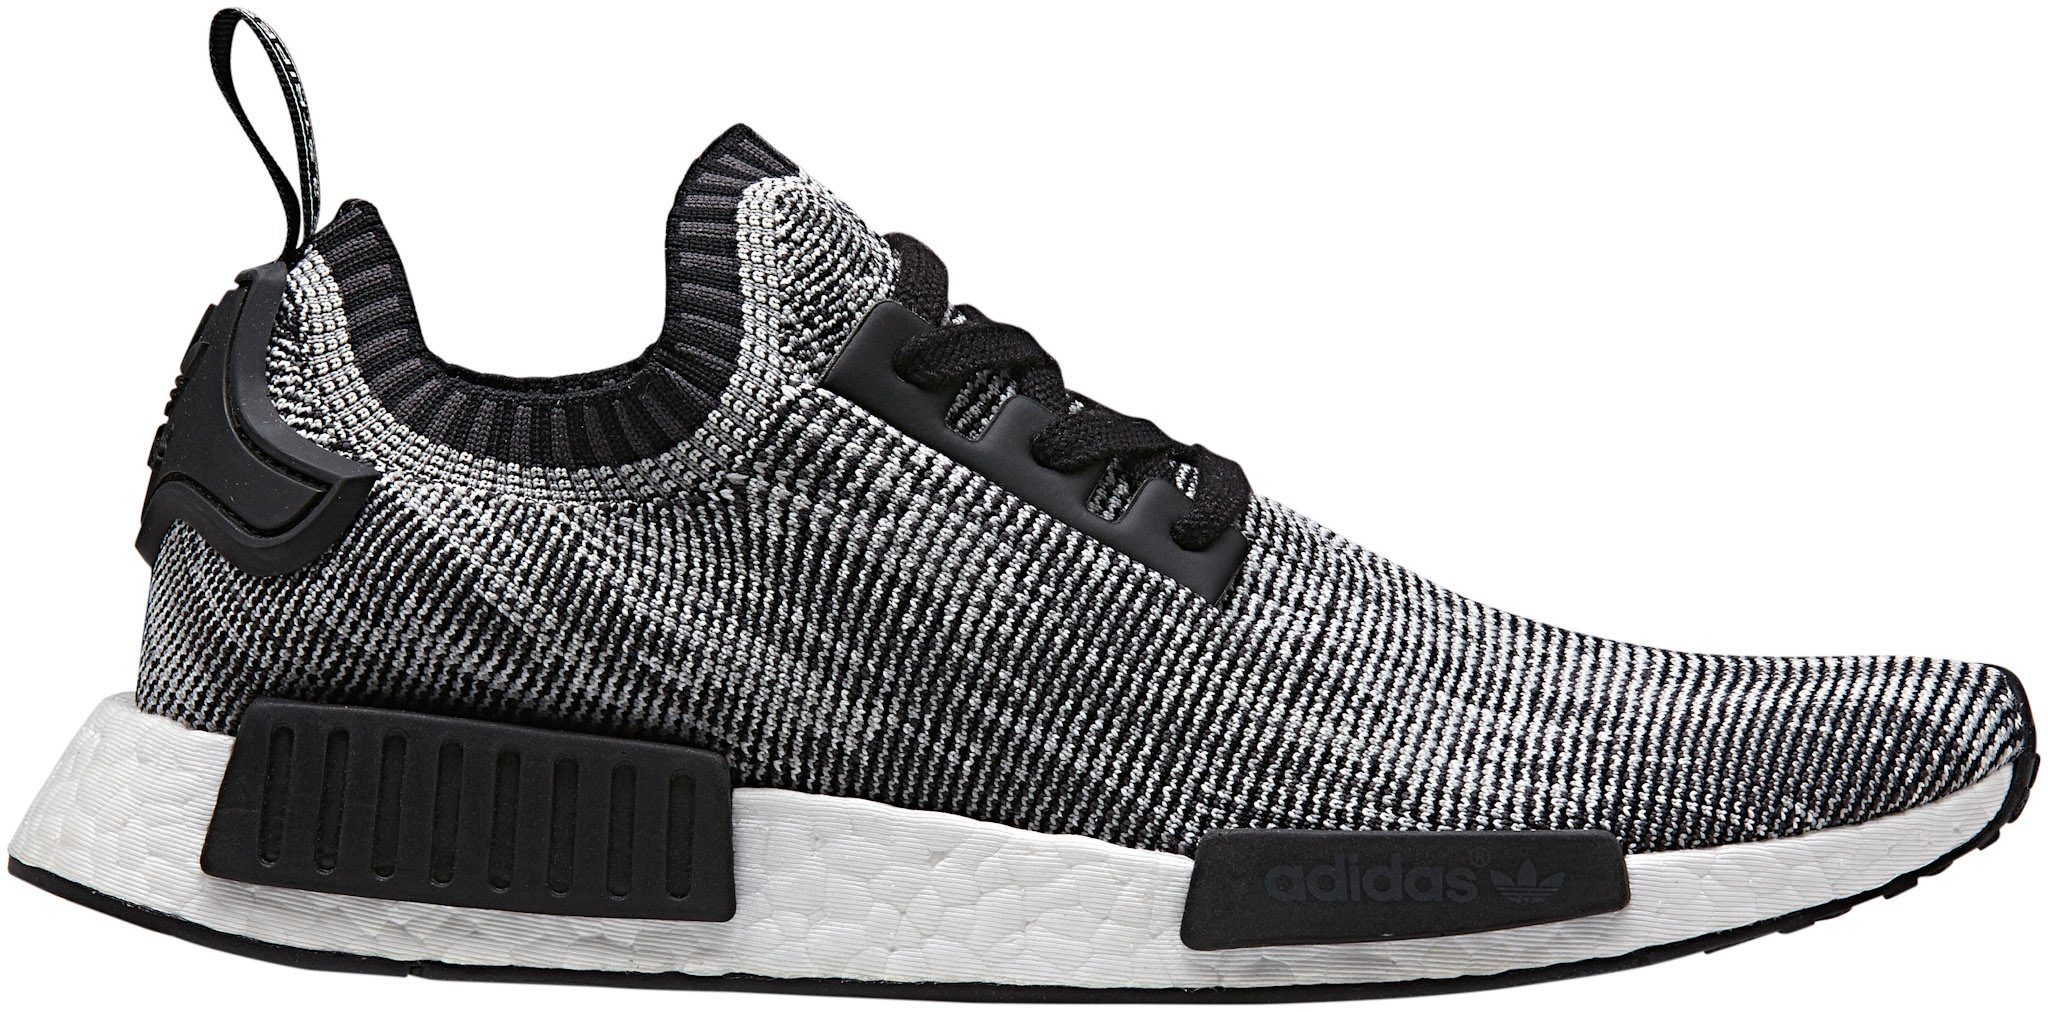 adidas Originals NMD R1 2